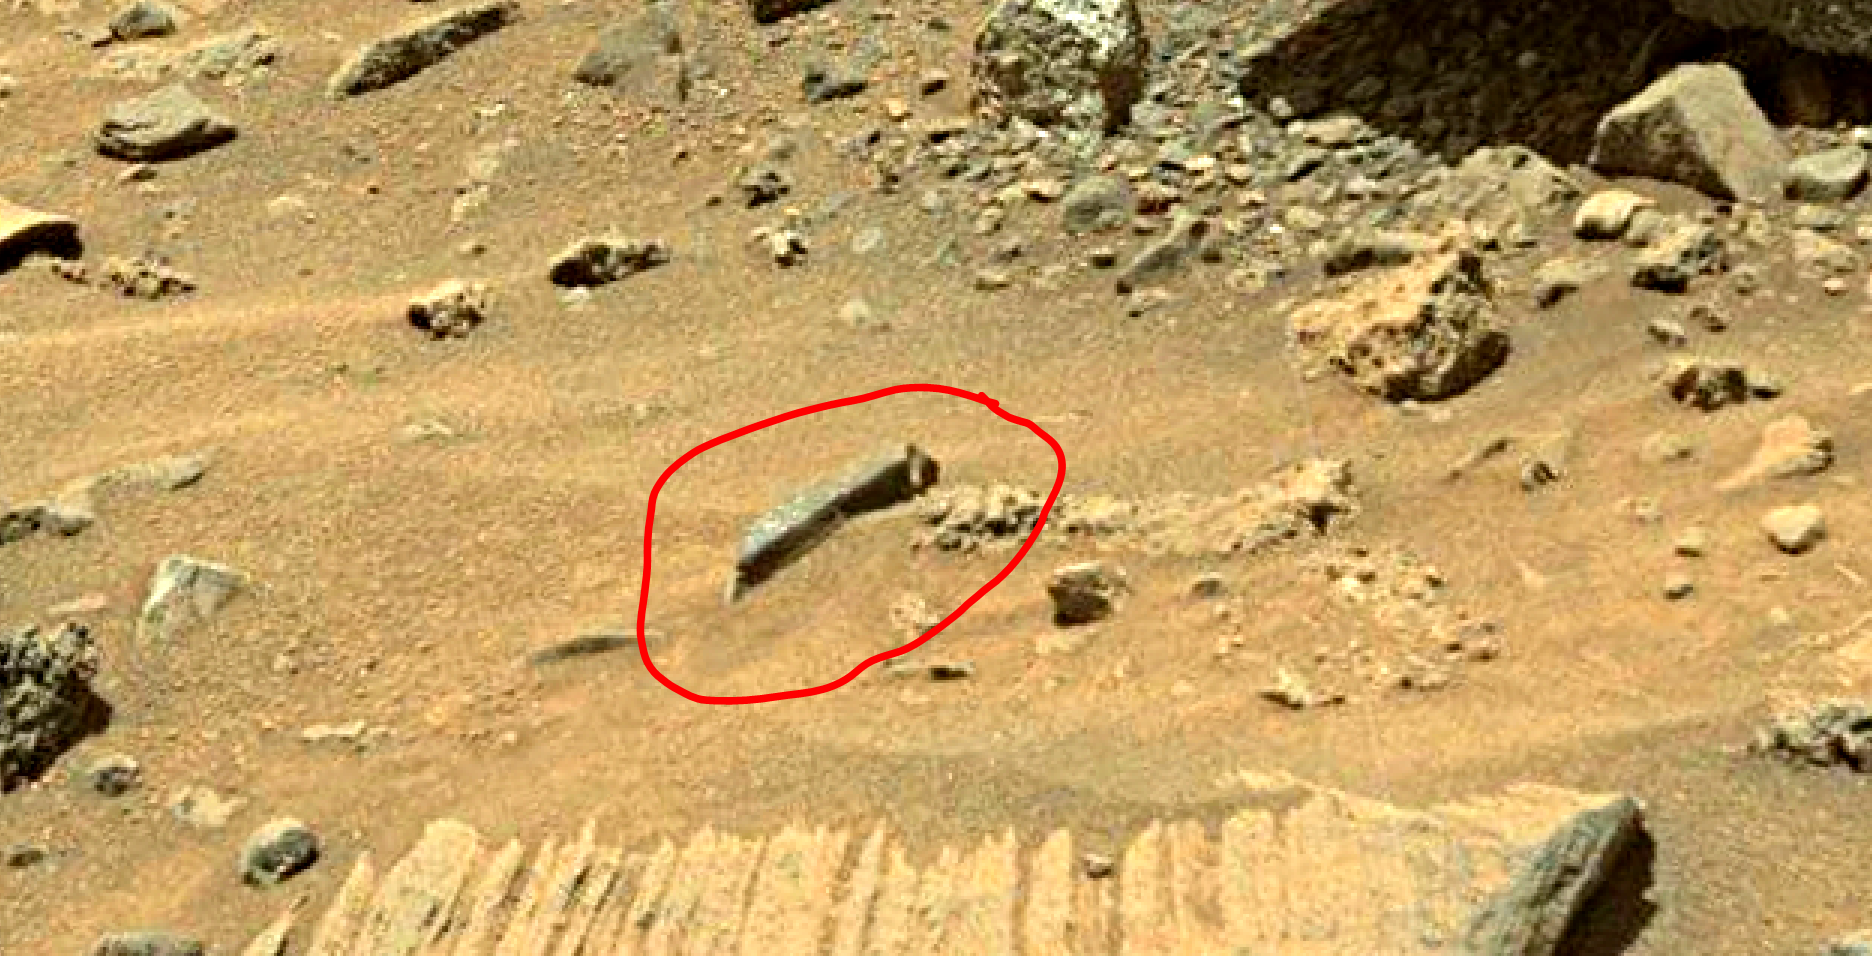 mars sol 1401 anomaly artifacts 6 was life on mars